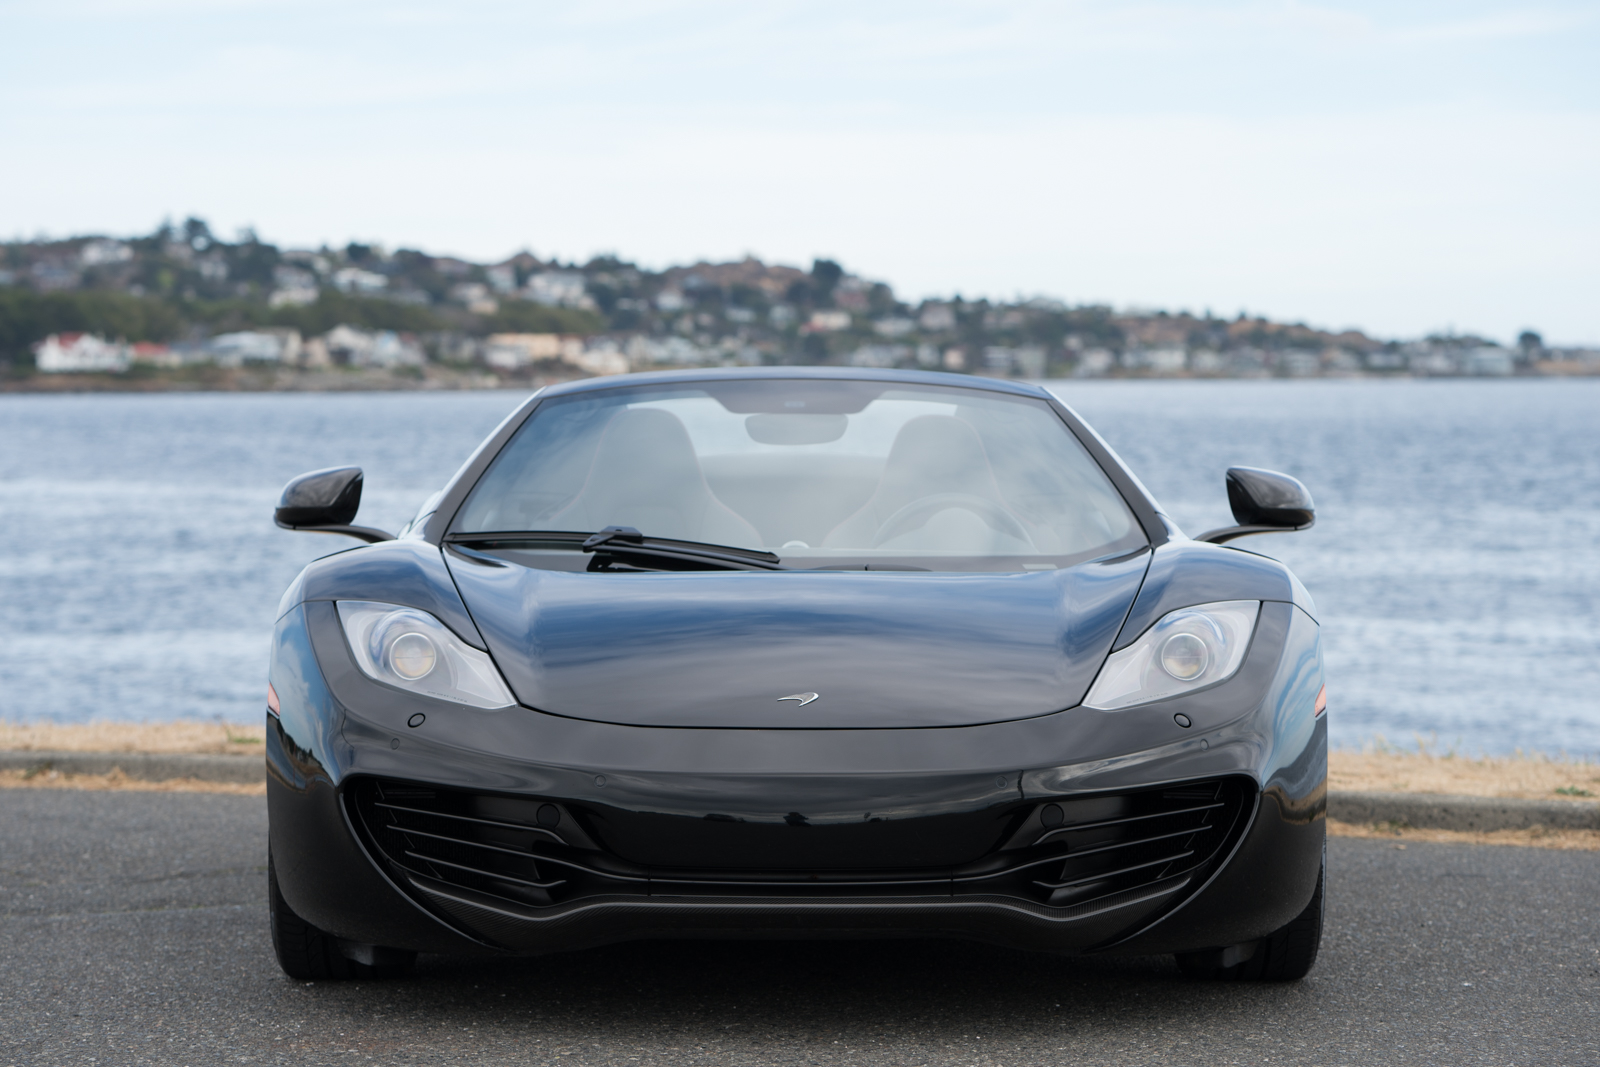 2013 McLaren MP4-12C Spider for sale